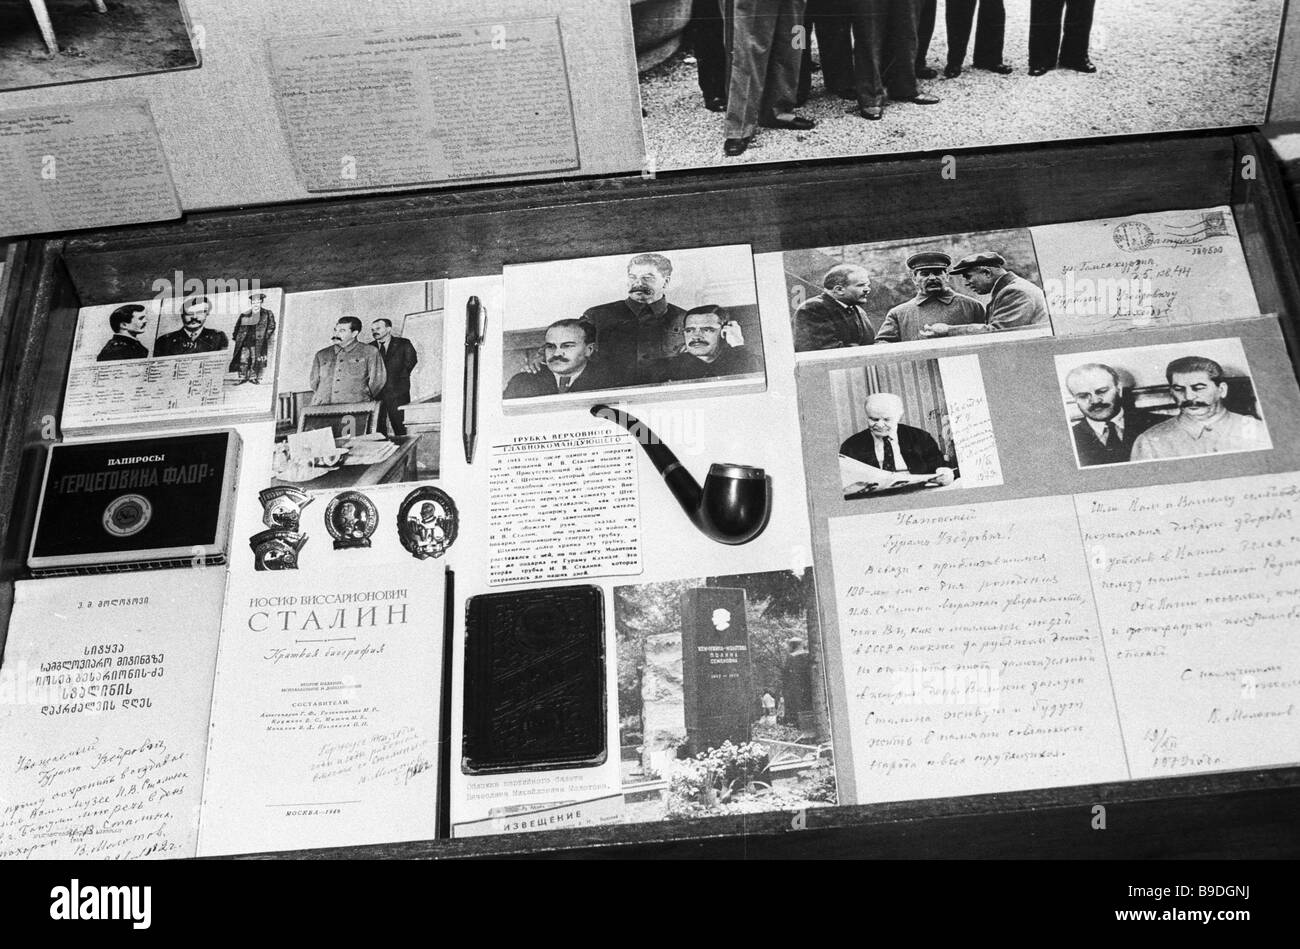 Exhibits of his Stalin cult of personality museum established by Docker Guram Kakhidze of the Batumi port - Stock Image